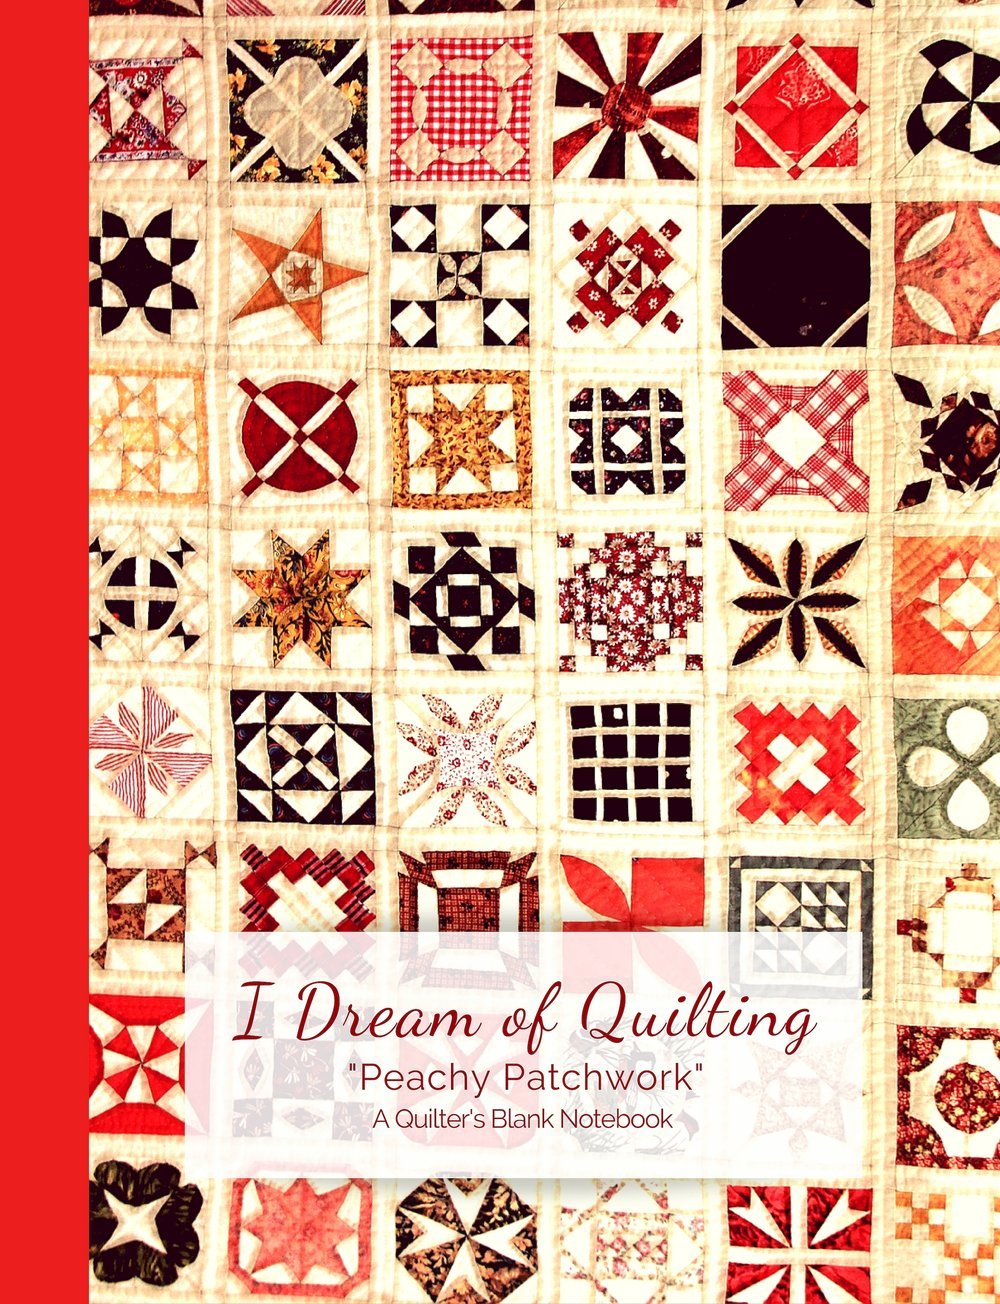 "I Dream of Quilting ""Peachy Patchwork"" Notebook"